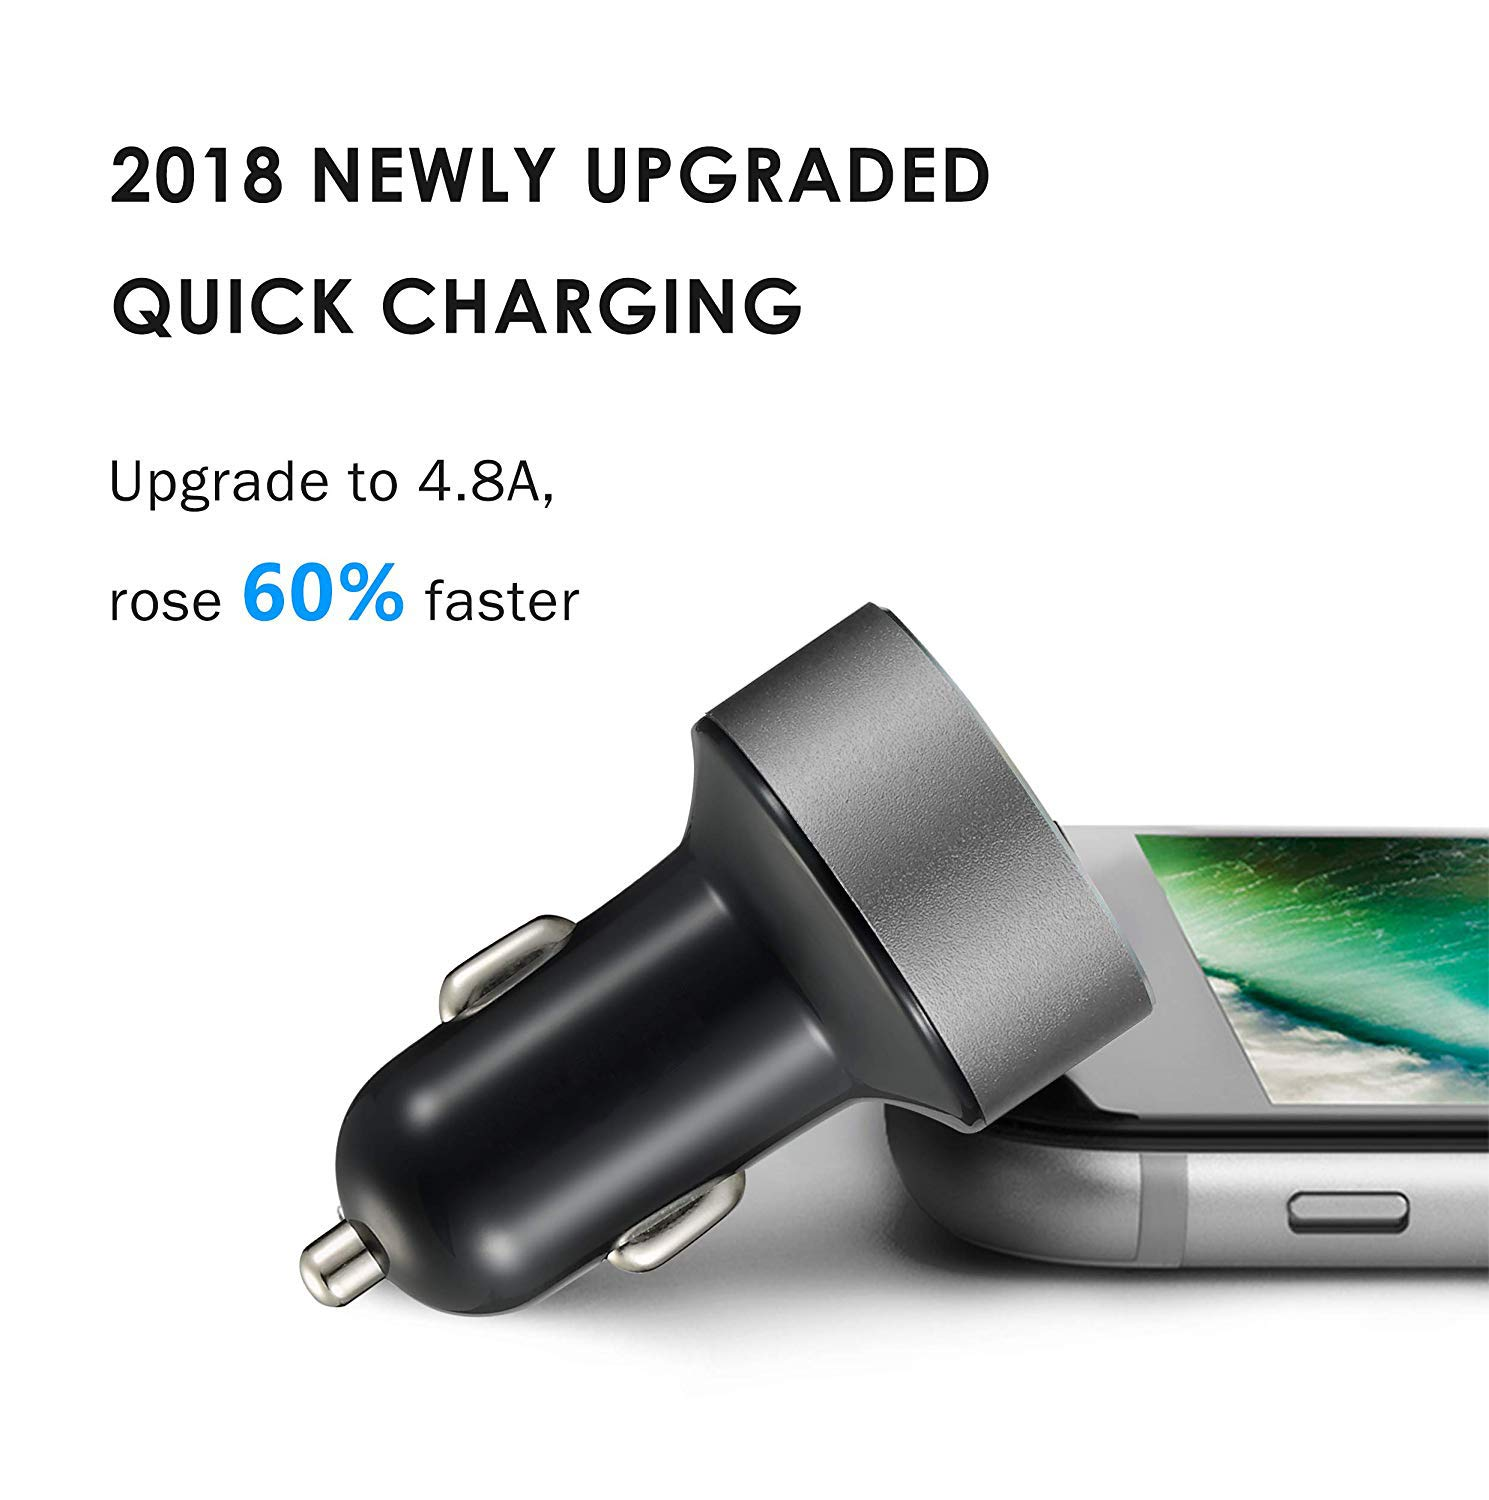 iPad Pro//Air 2//Mini MOLJILA 4.8A 24W Dual USB Fast Car Charger with Smart Identification for iPhone X//8//7//Plus Car Charger Samsung Galaxy Note8//S8//S8+ and More BLUENEW AMOLJILA